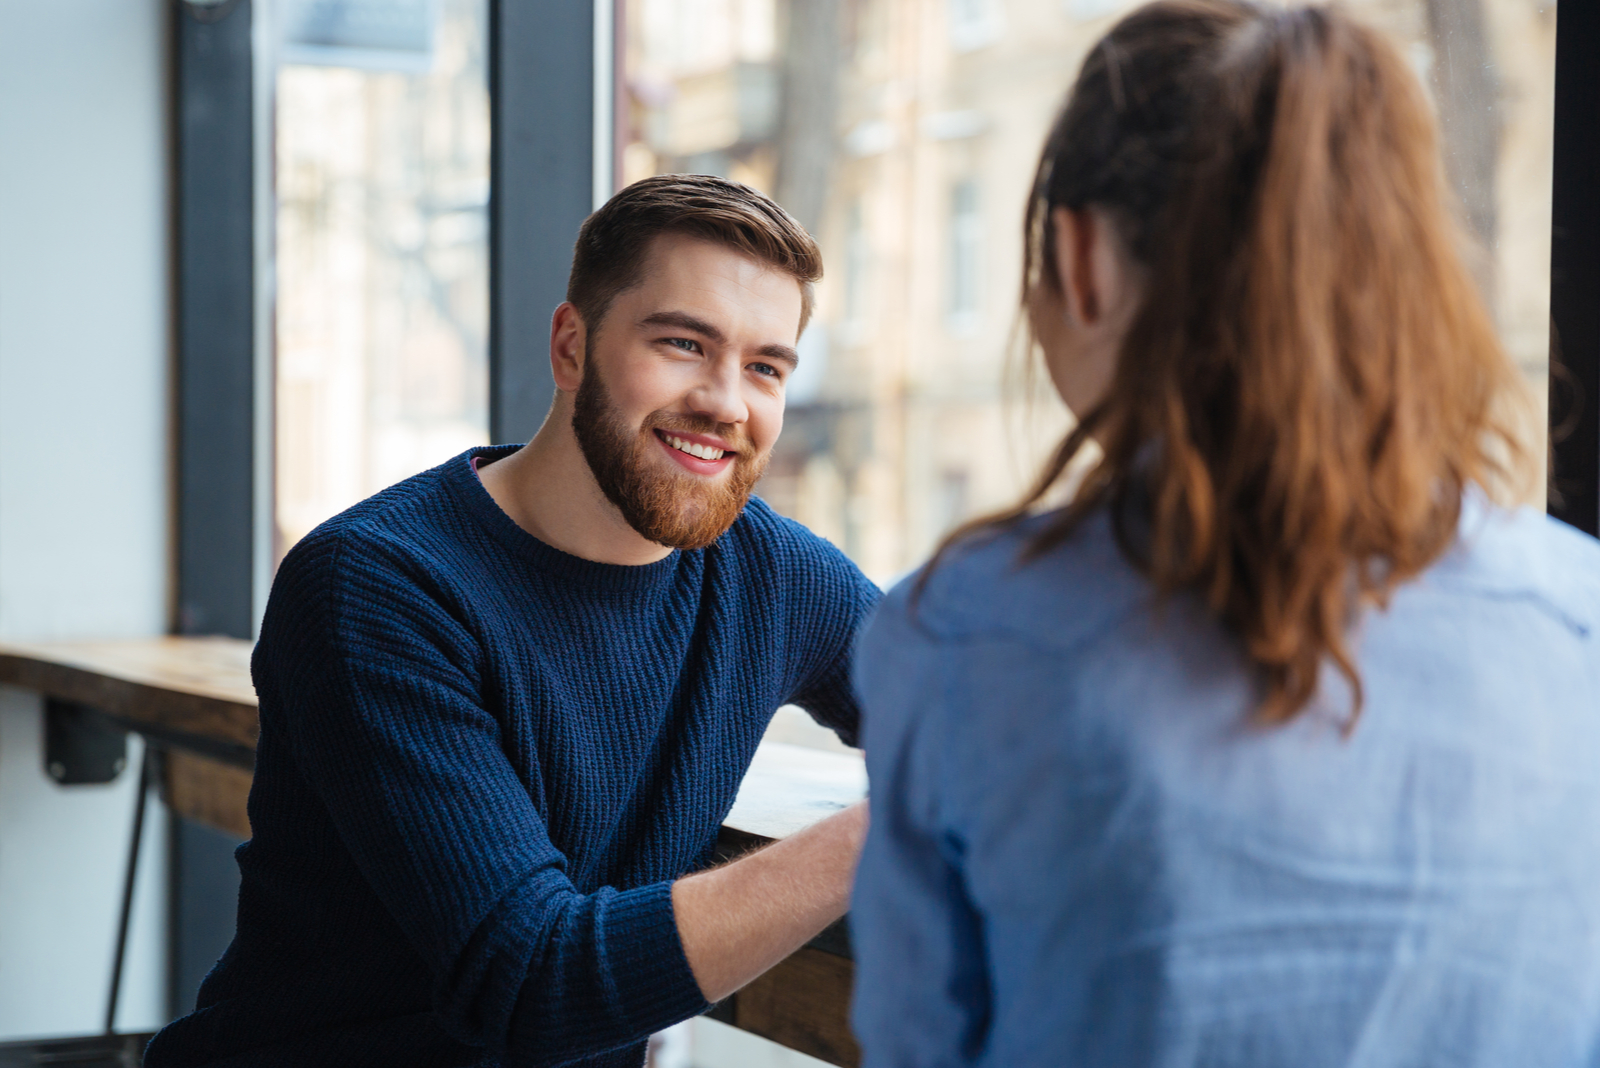 a smiling man talking to a woman